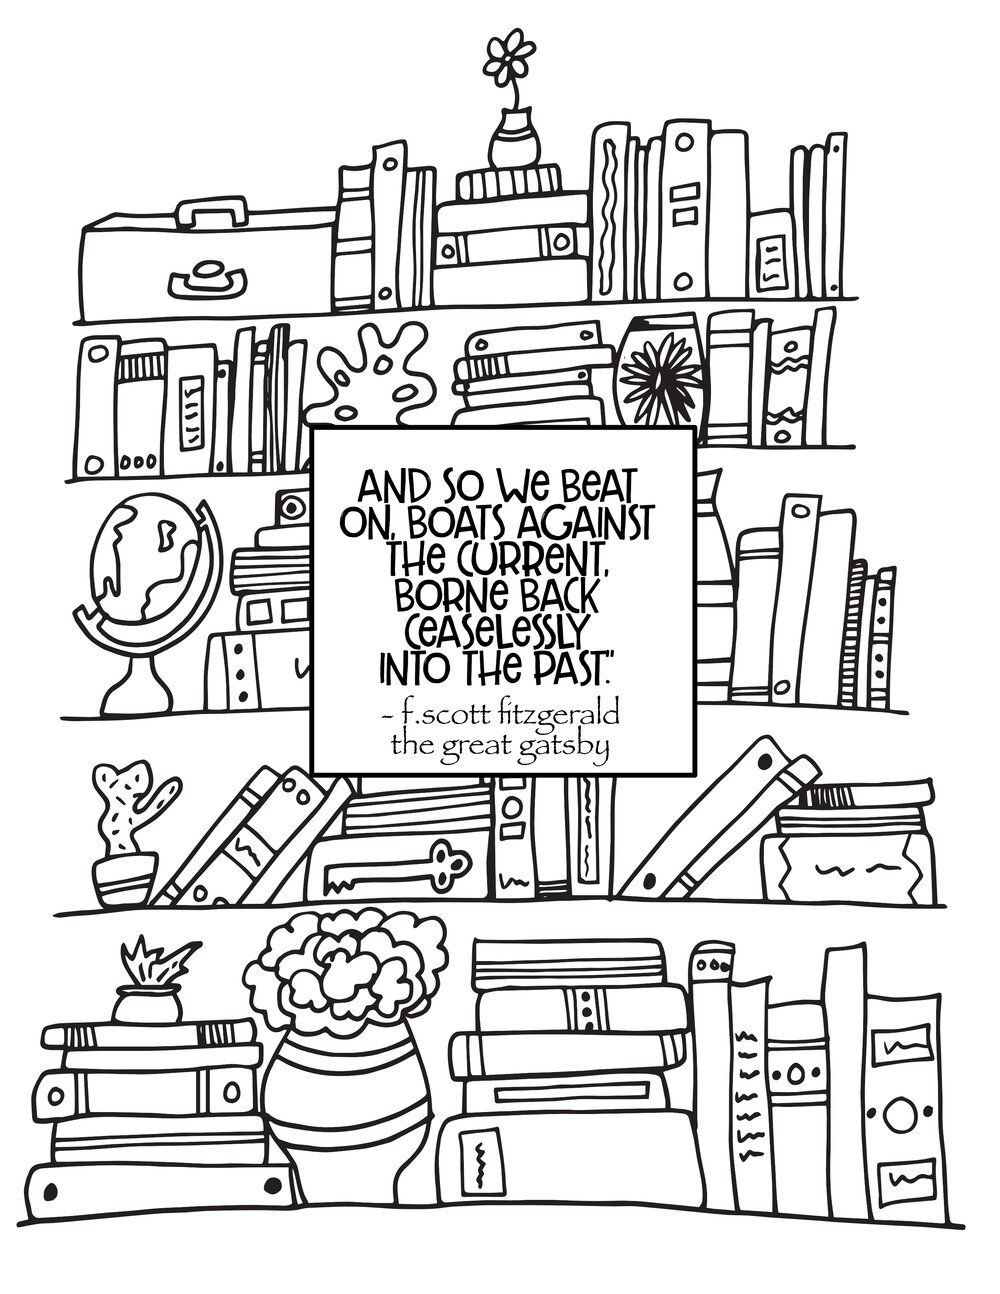 Bookshelf Great Gatsby Quote Free Bookshelf Coloring Page In